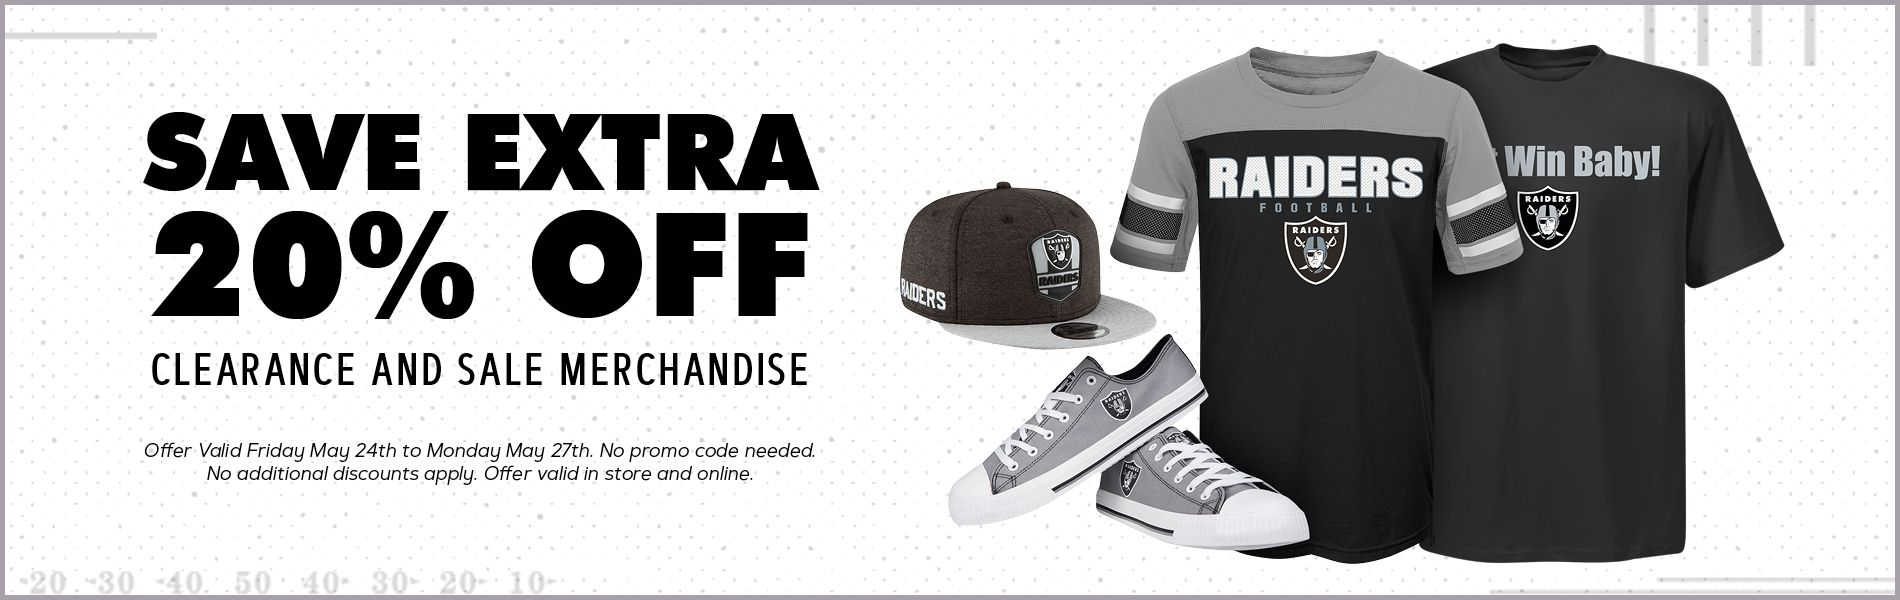 8e5577569d8 The Raider Image - The Official Store for Oakland Raiders Merchandise